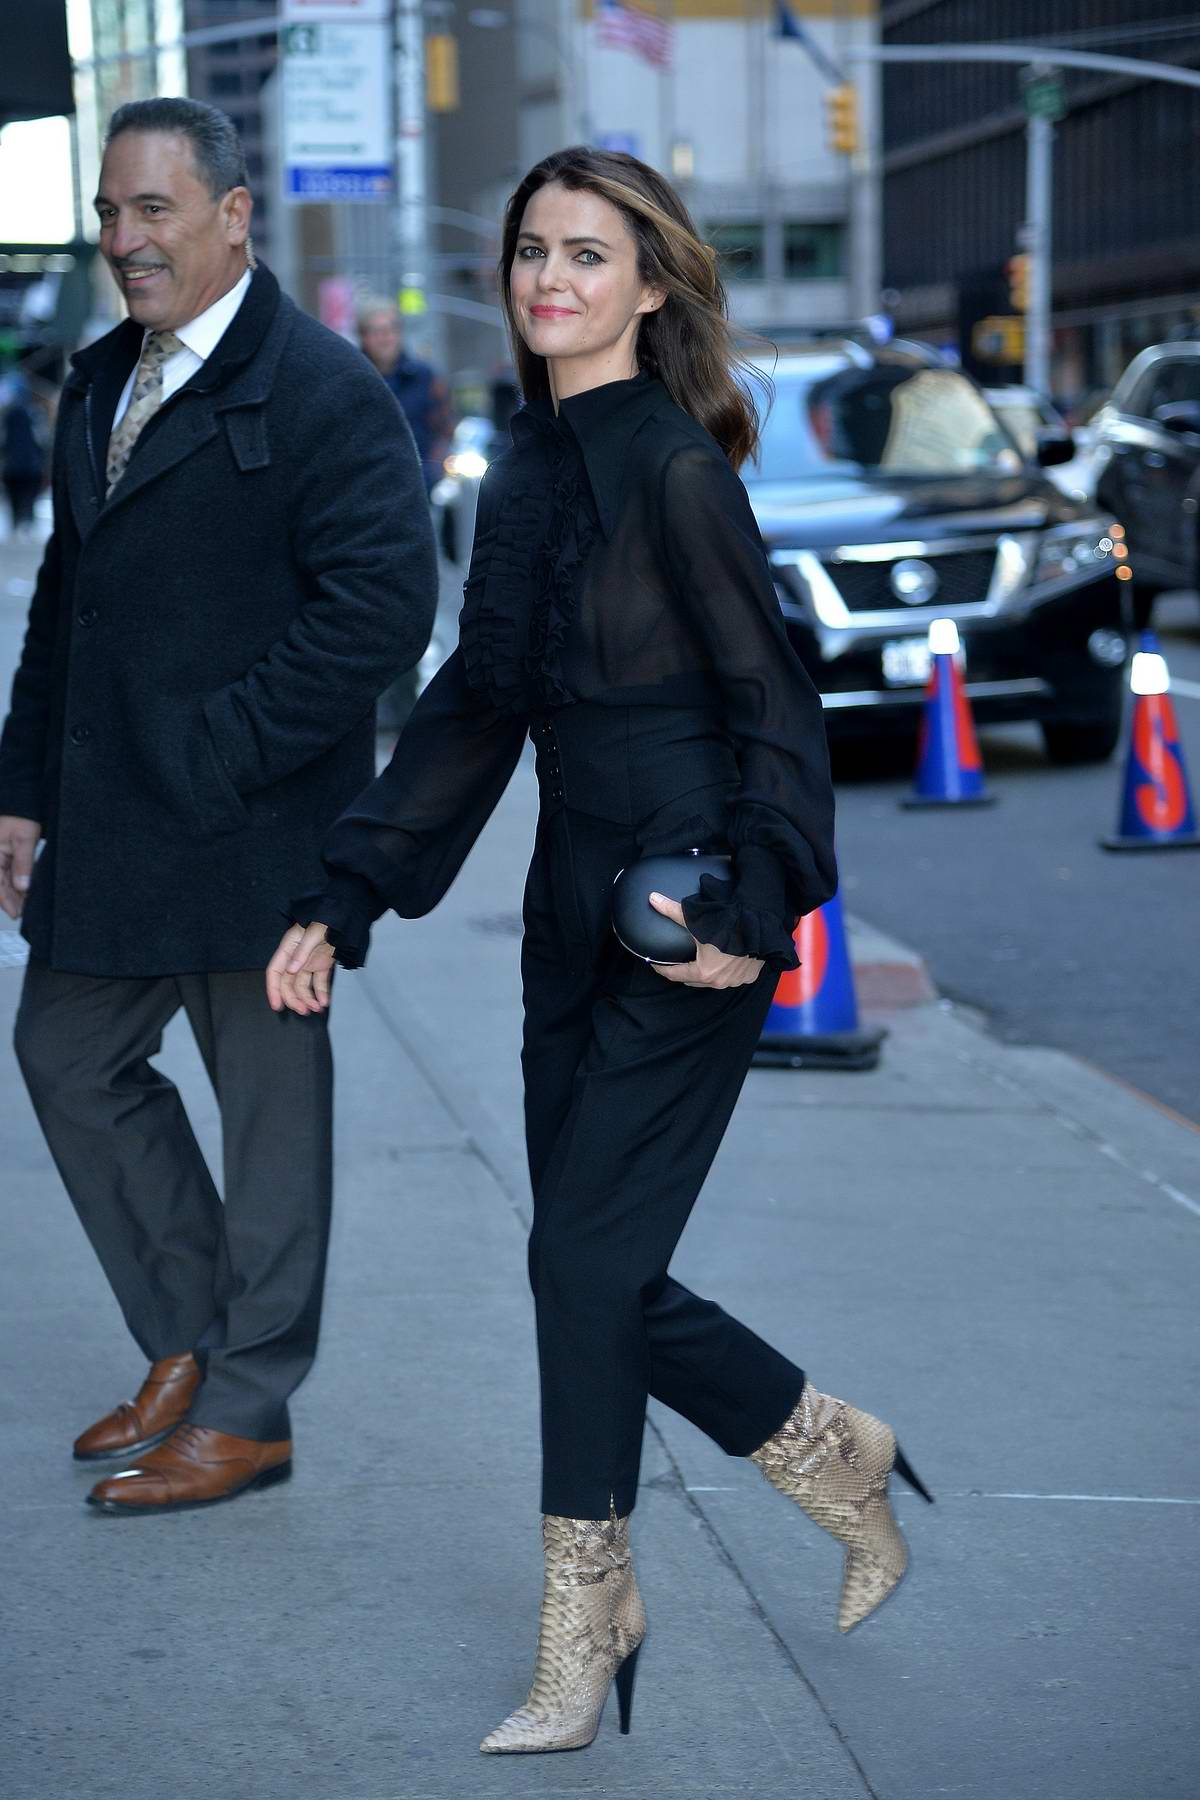 Keri Russell looks chic in all black as she arrives for an appearance on 'The Late Show with Stephen Colbert' in New York City